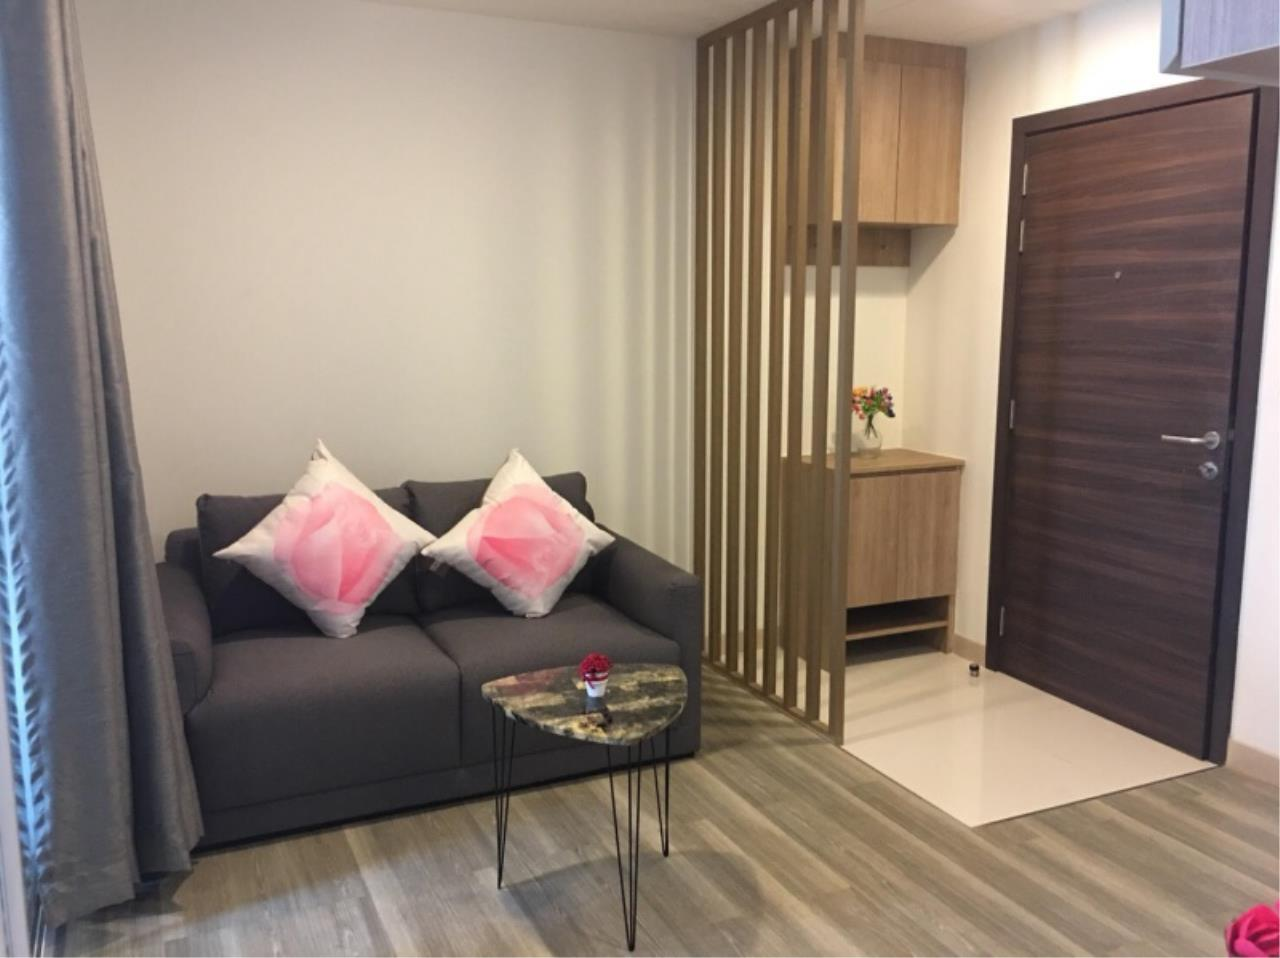 Century21 Skylux Agency's Moniiq Sukhumvit 64 / Condo For Rent / 1 Bedroom / 28 SQM / BTS Bang Chak / Bangkok 1